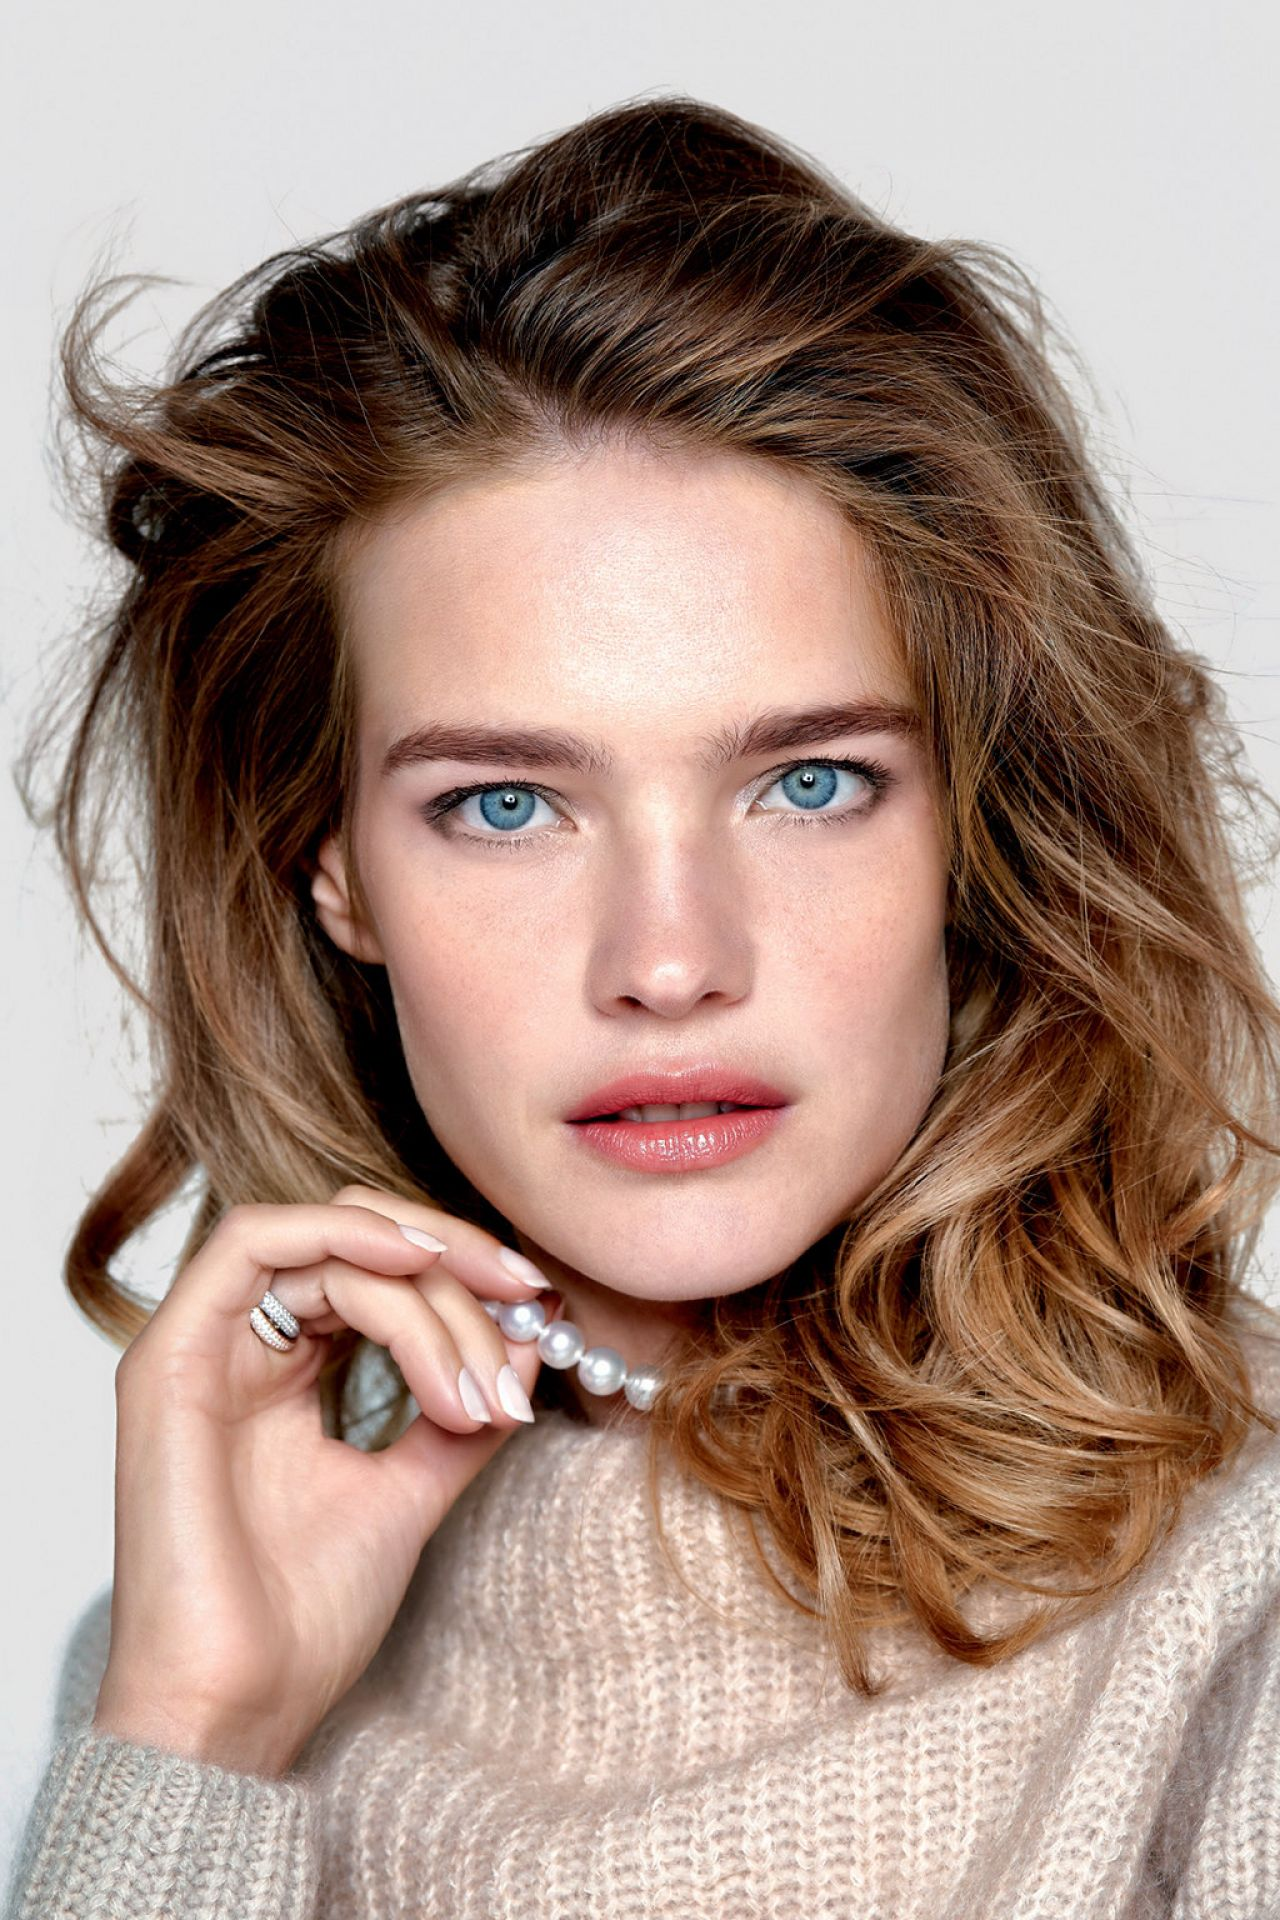 Natalia Vodianova Photoshoot For Vogue Magazine Russia